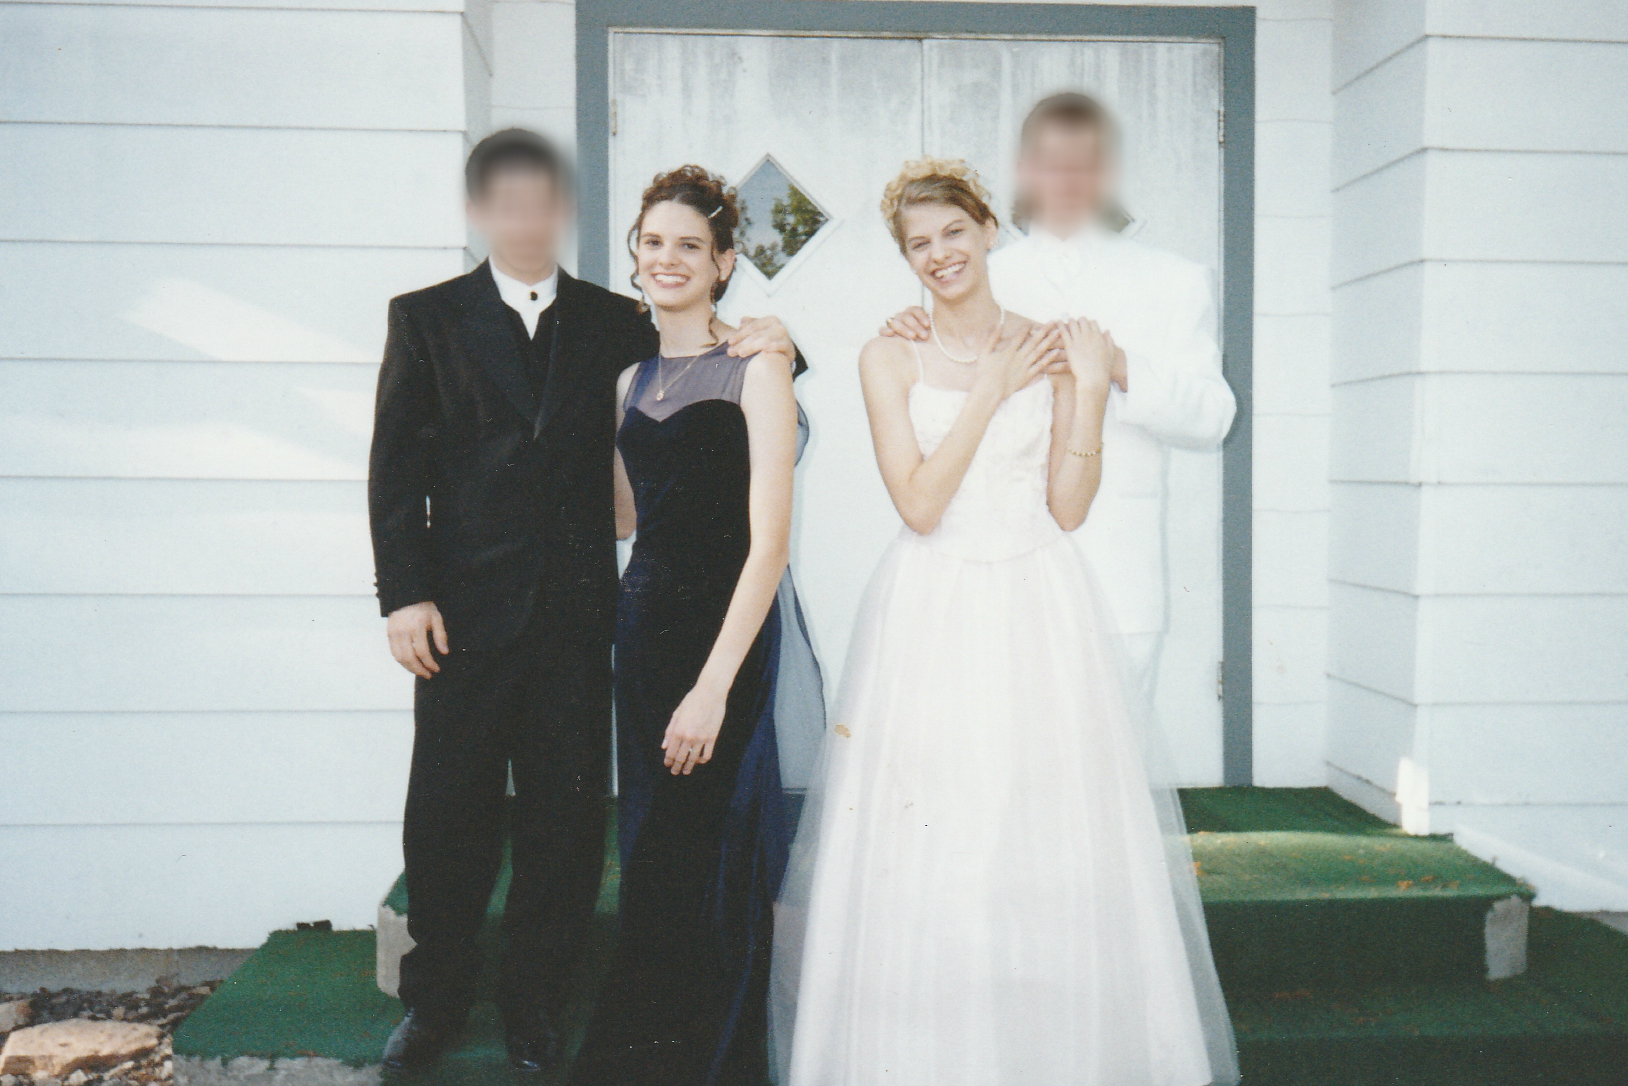 May 1999 - Posing for prom pictures on the church steps (the black mold in the background should have tipped us off something was afoot.)